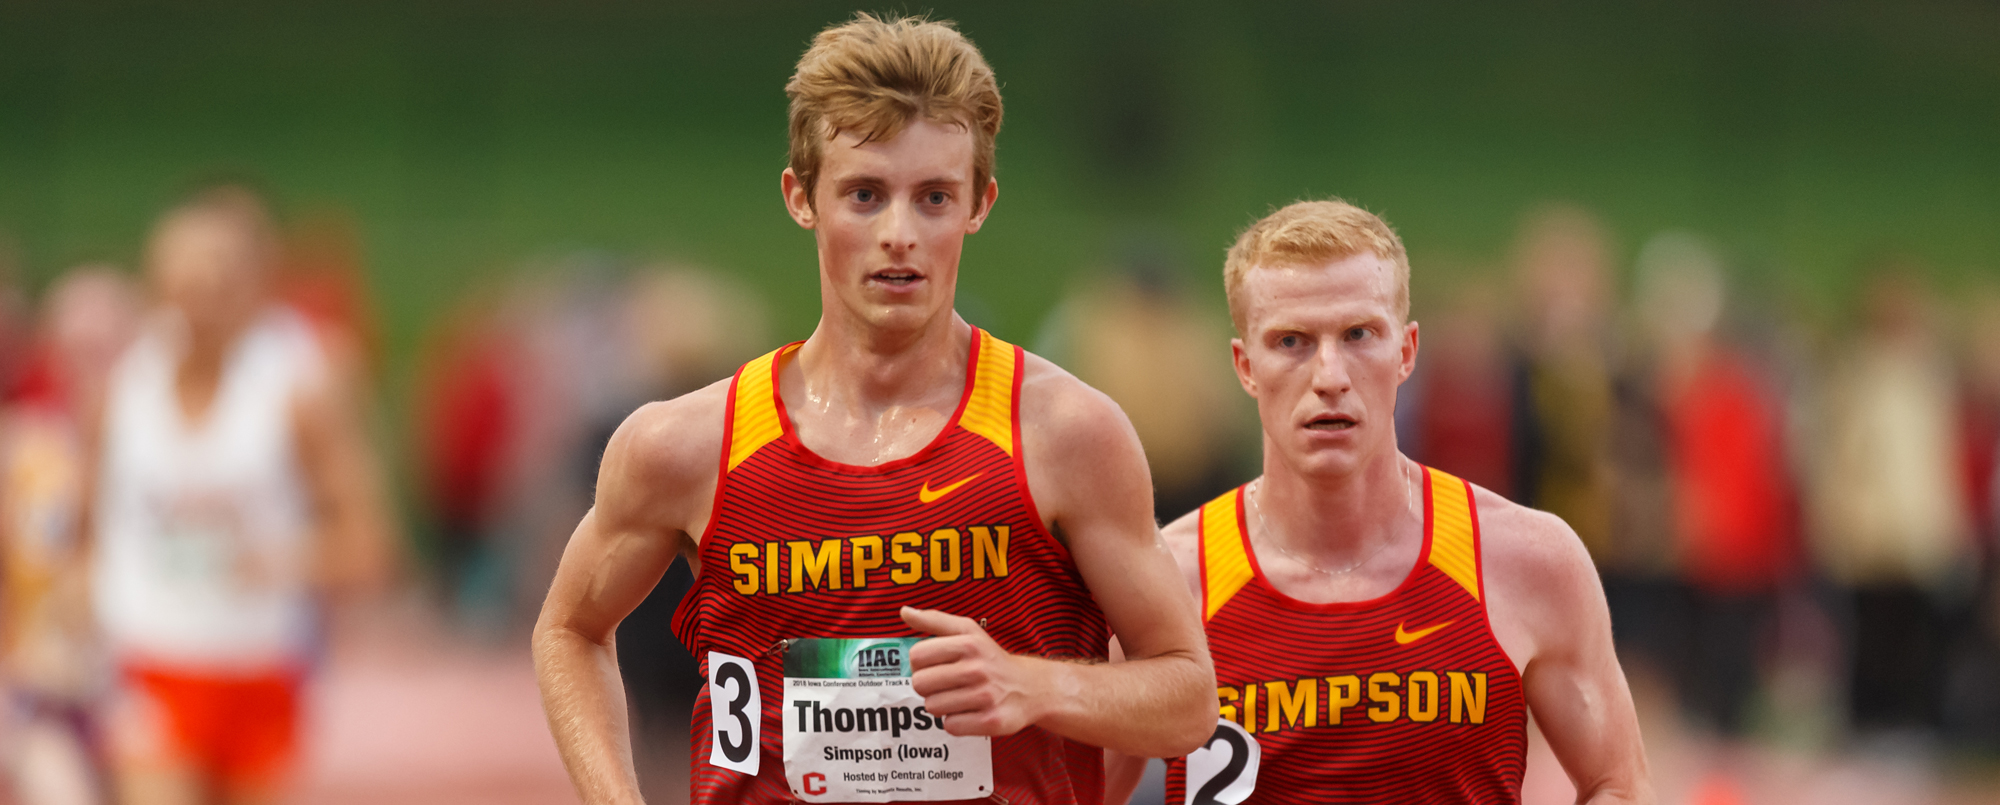 Trey Thompson (3) and Ian McKenzie (2)